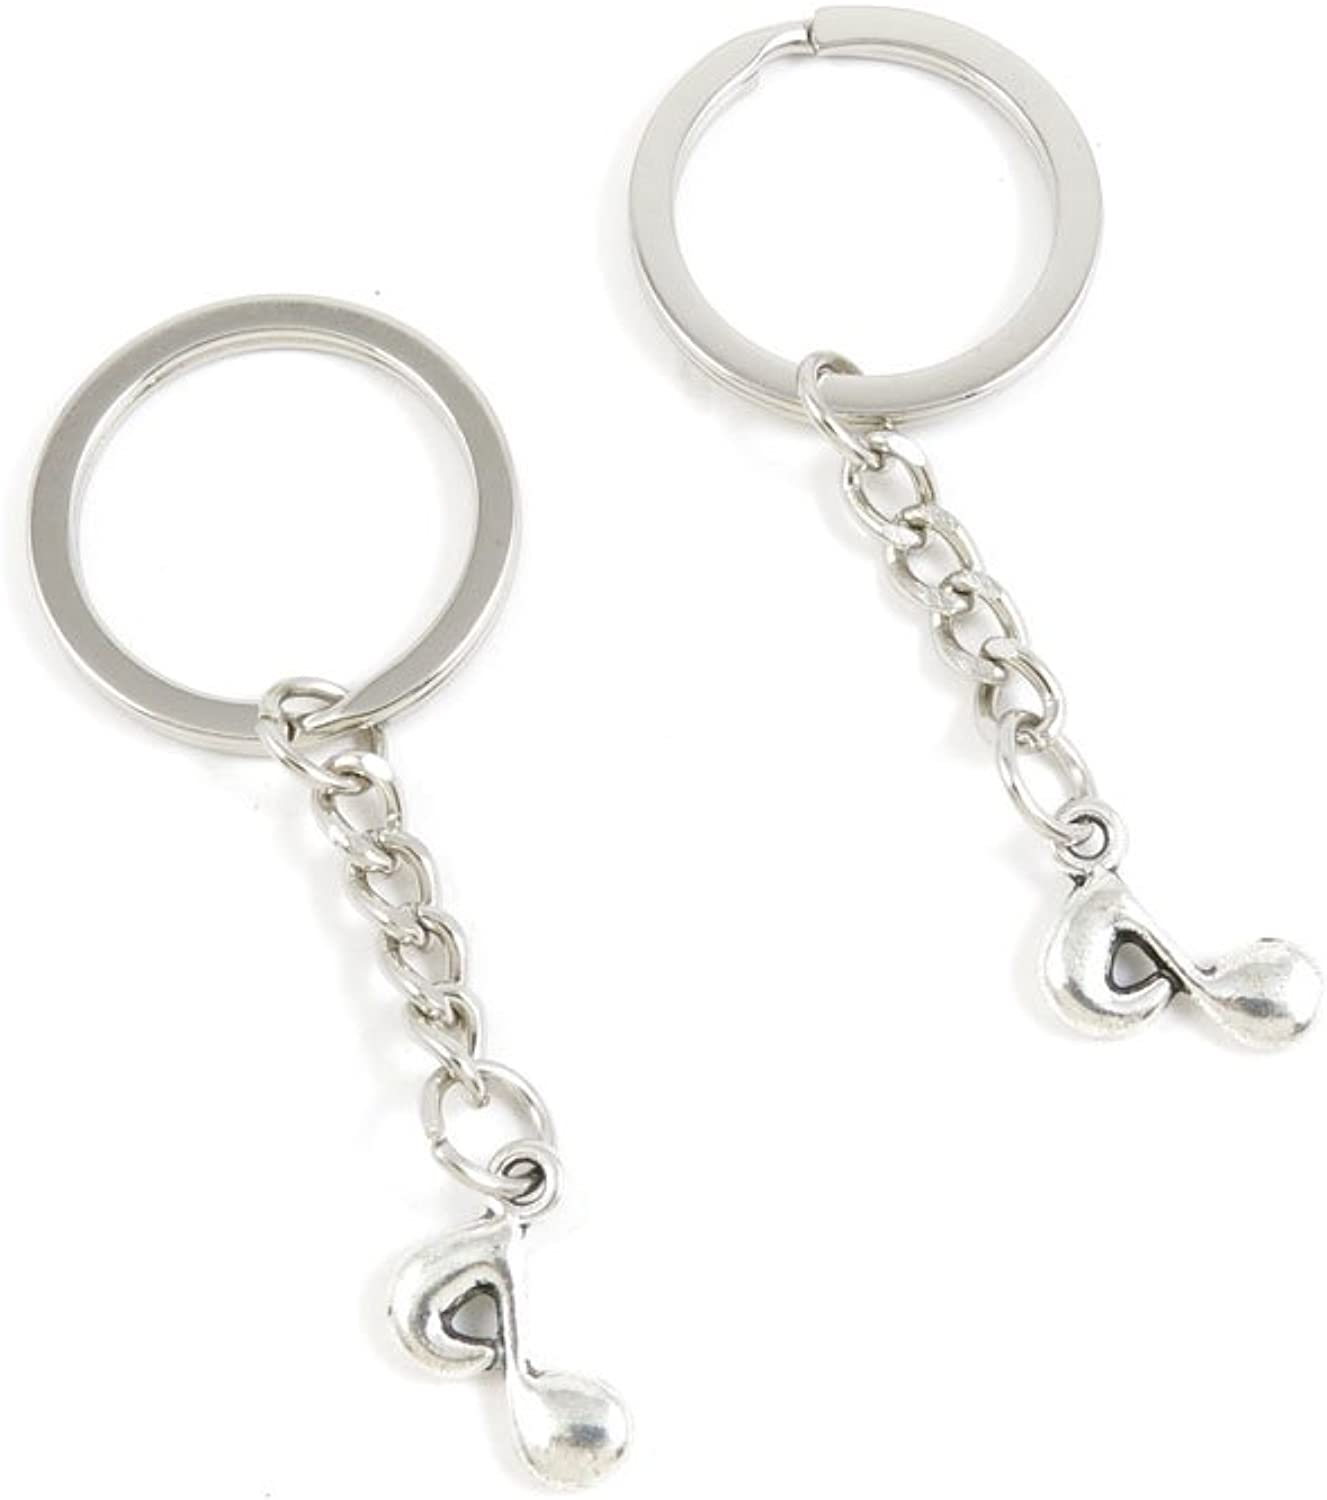 240 Pieces Fashion Jewelry Keyring Keychain Door Car Key Tag Ring Chain Supplier Supply Wholesale Bulk Lots O7AE8 Music Note